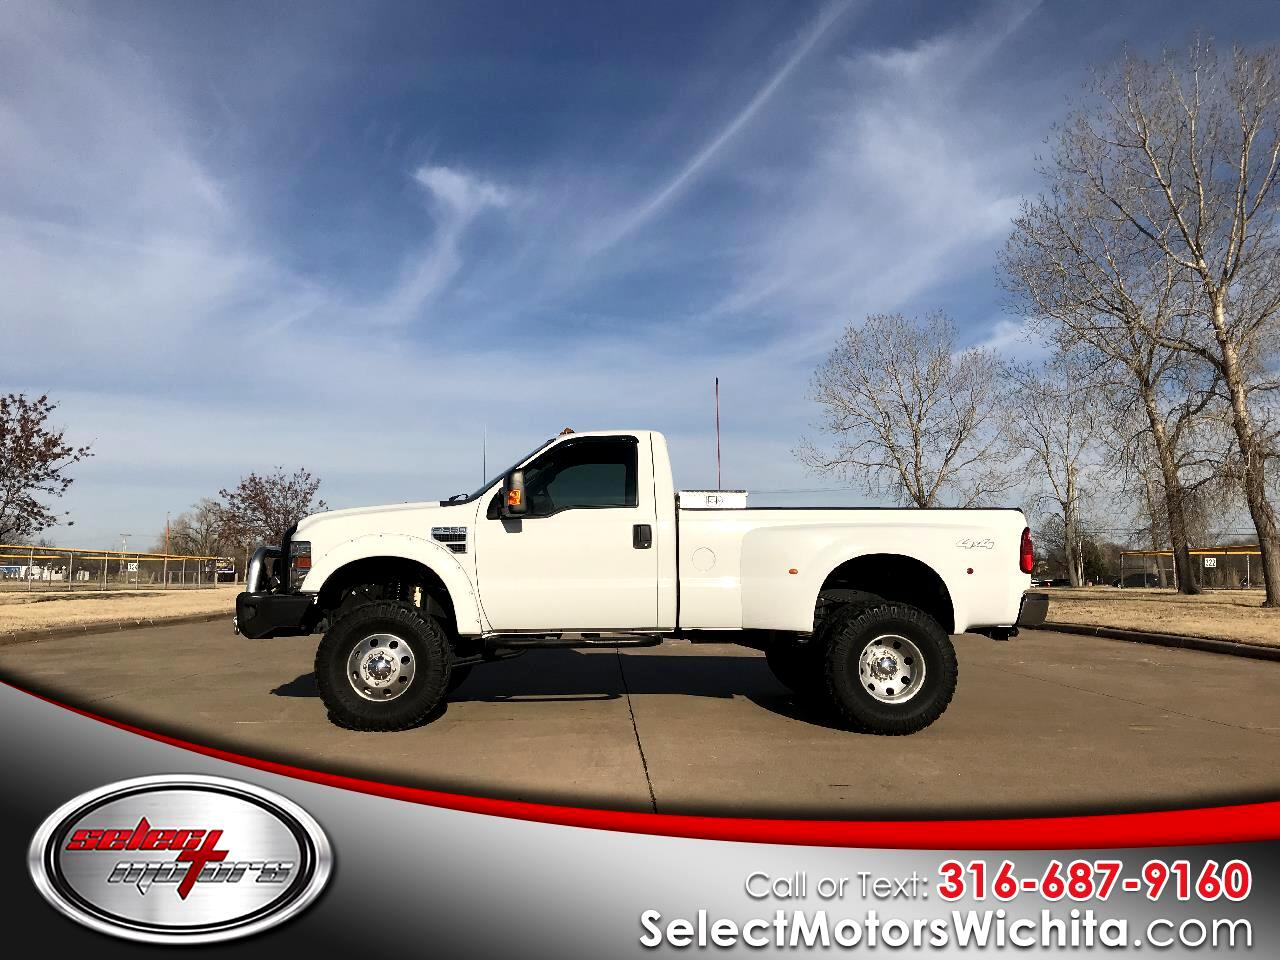 2010 Ford Super Duty F-350 DRW 2WD Reg Cab 137